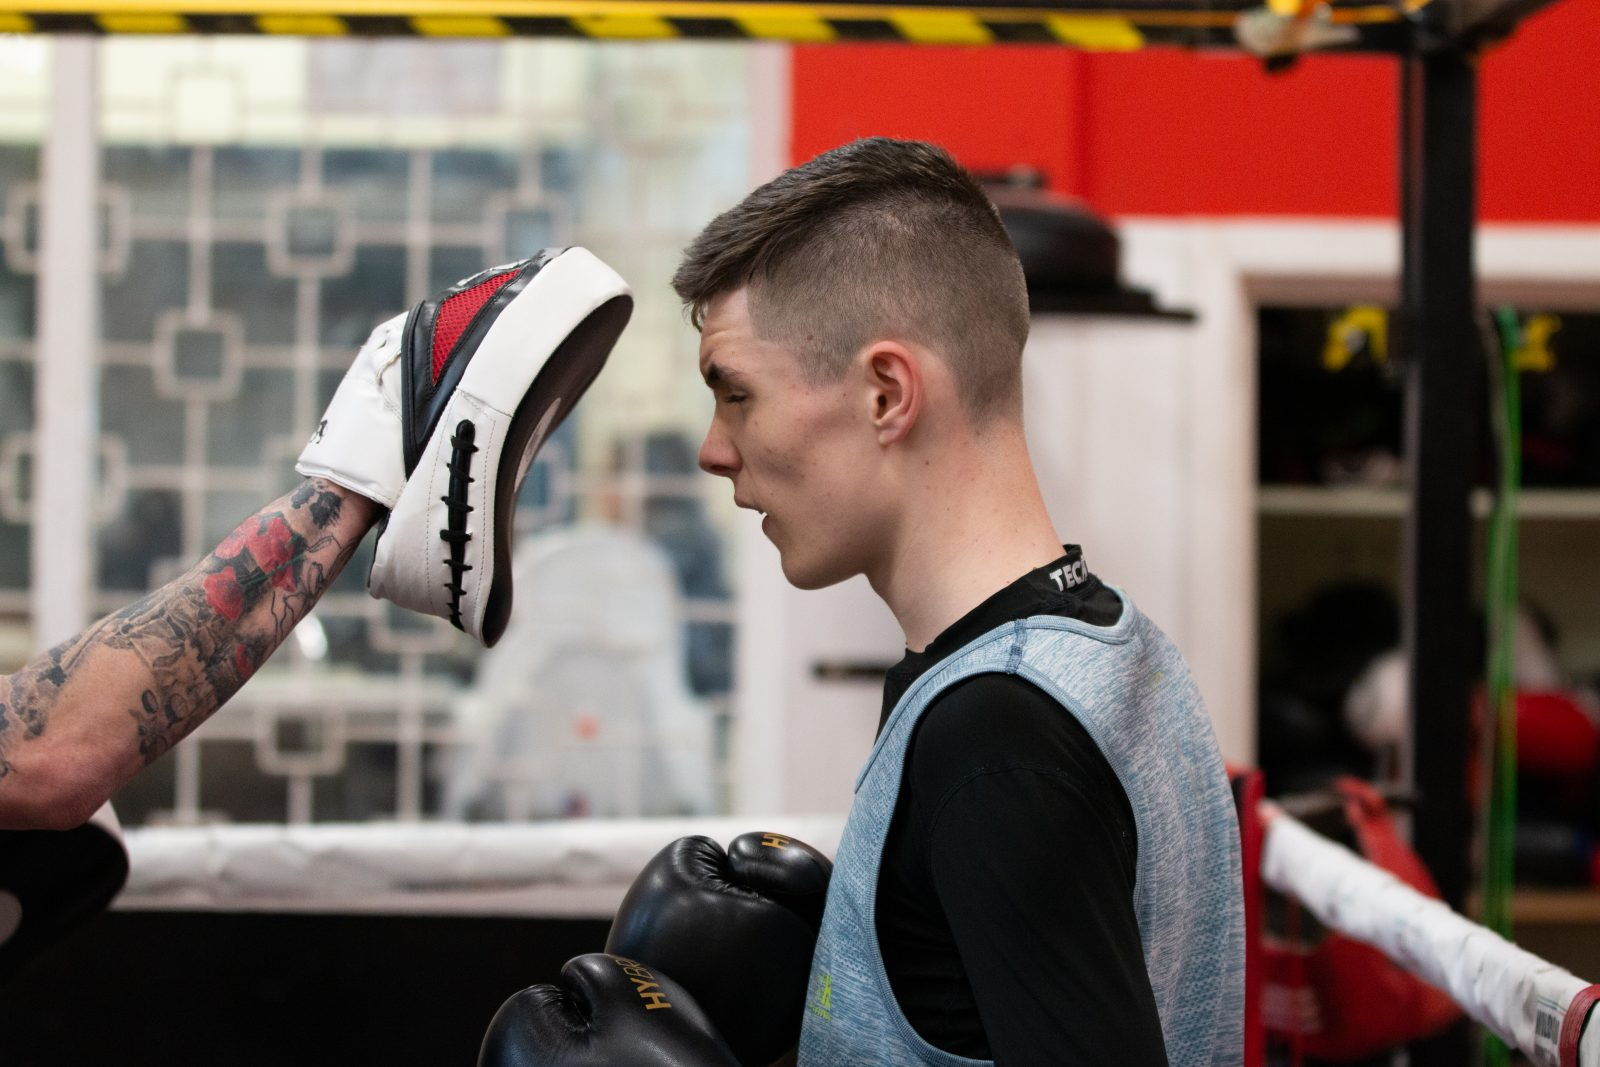 A young person wears a black long sleeve top, a blue sports vest and black boxing gloves. A tattooed arm holds a boxing pad close to their face.